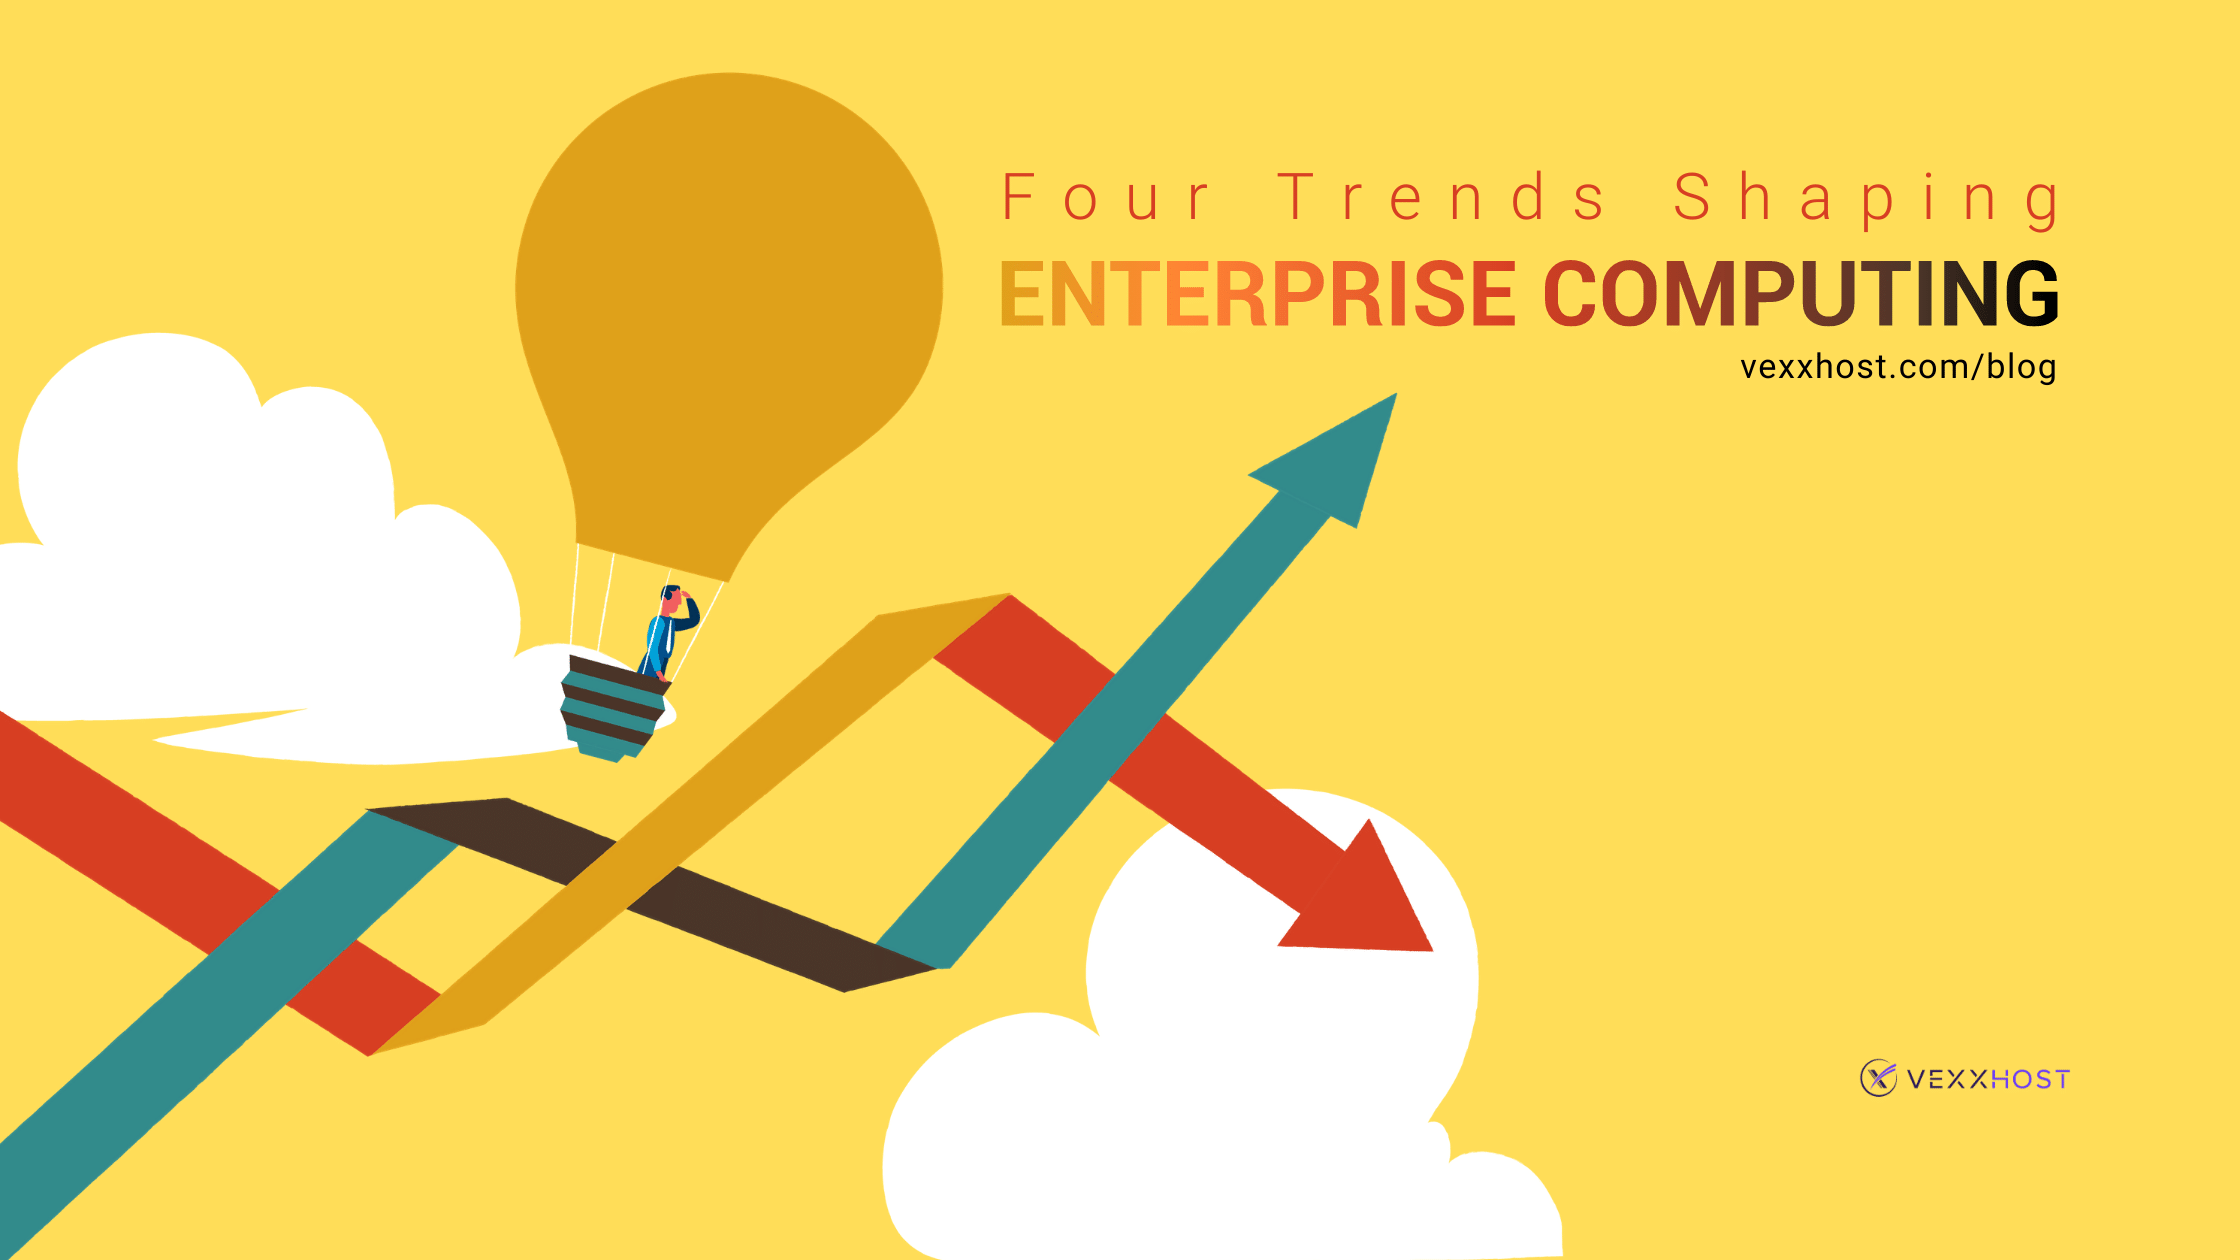 Four Trends Shaping Enterprise Computing